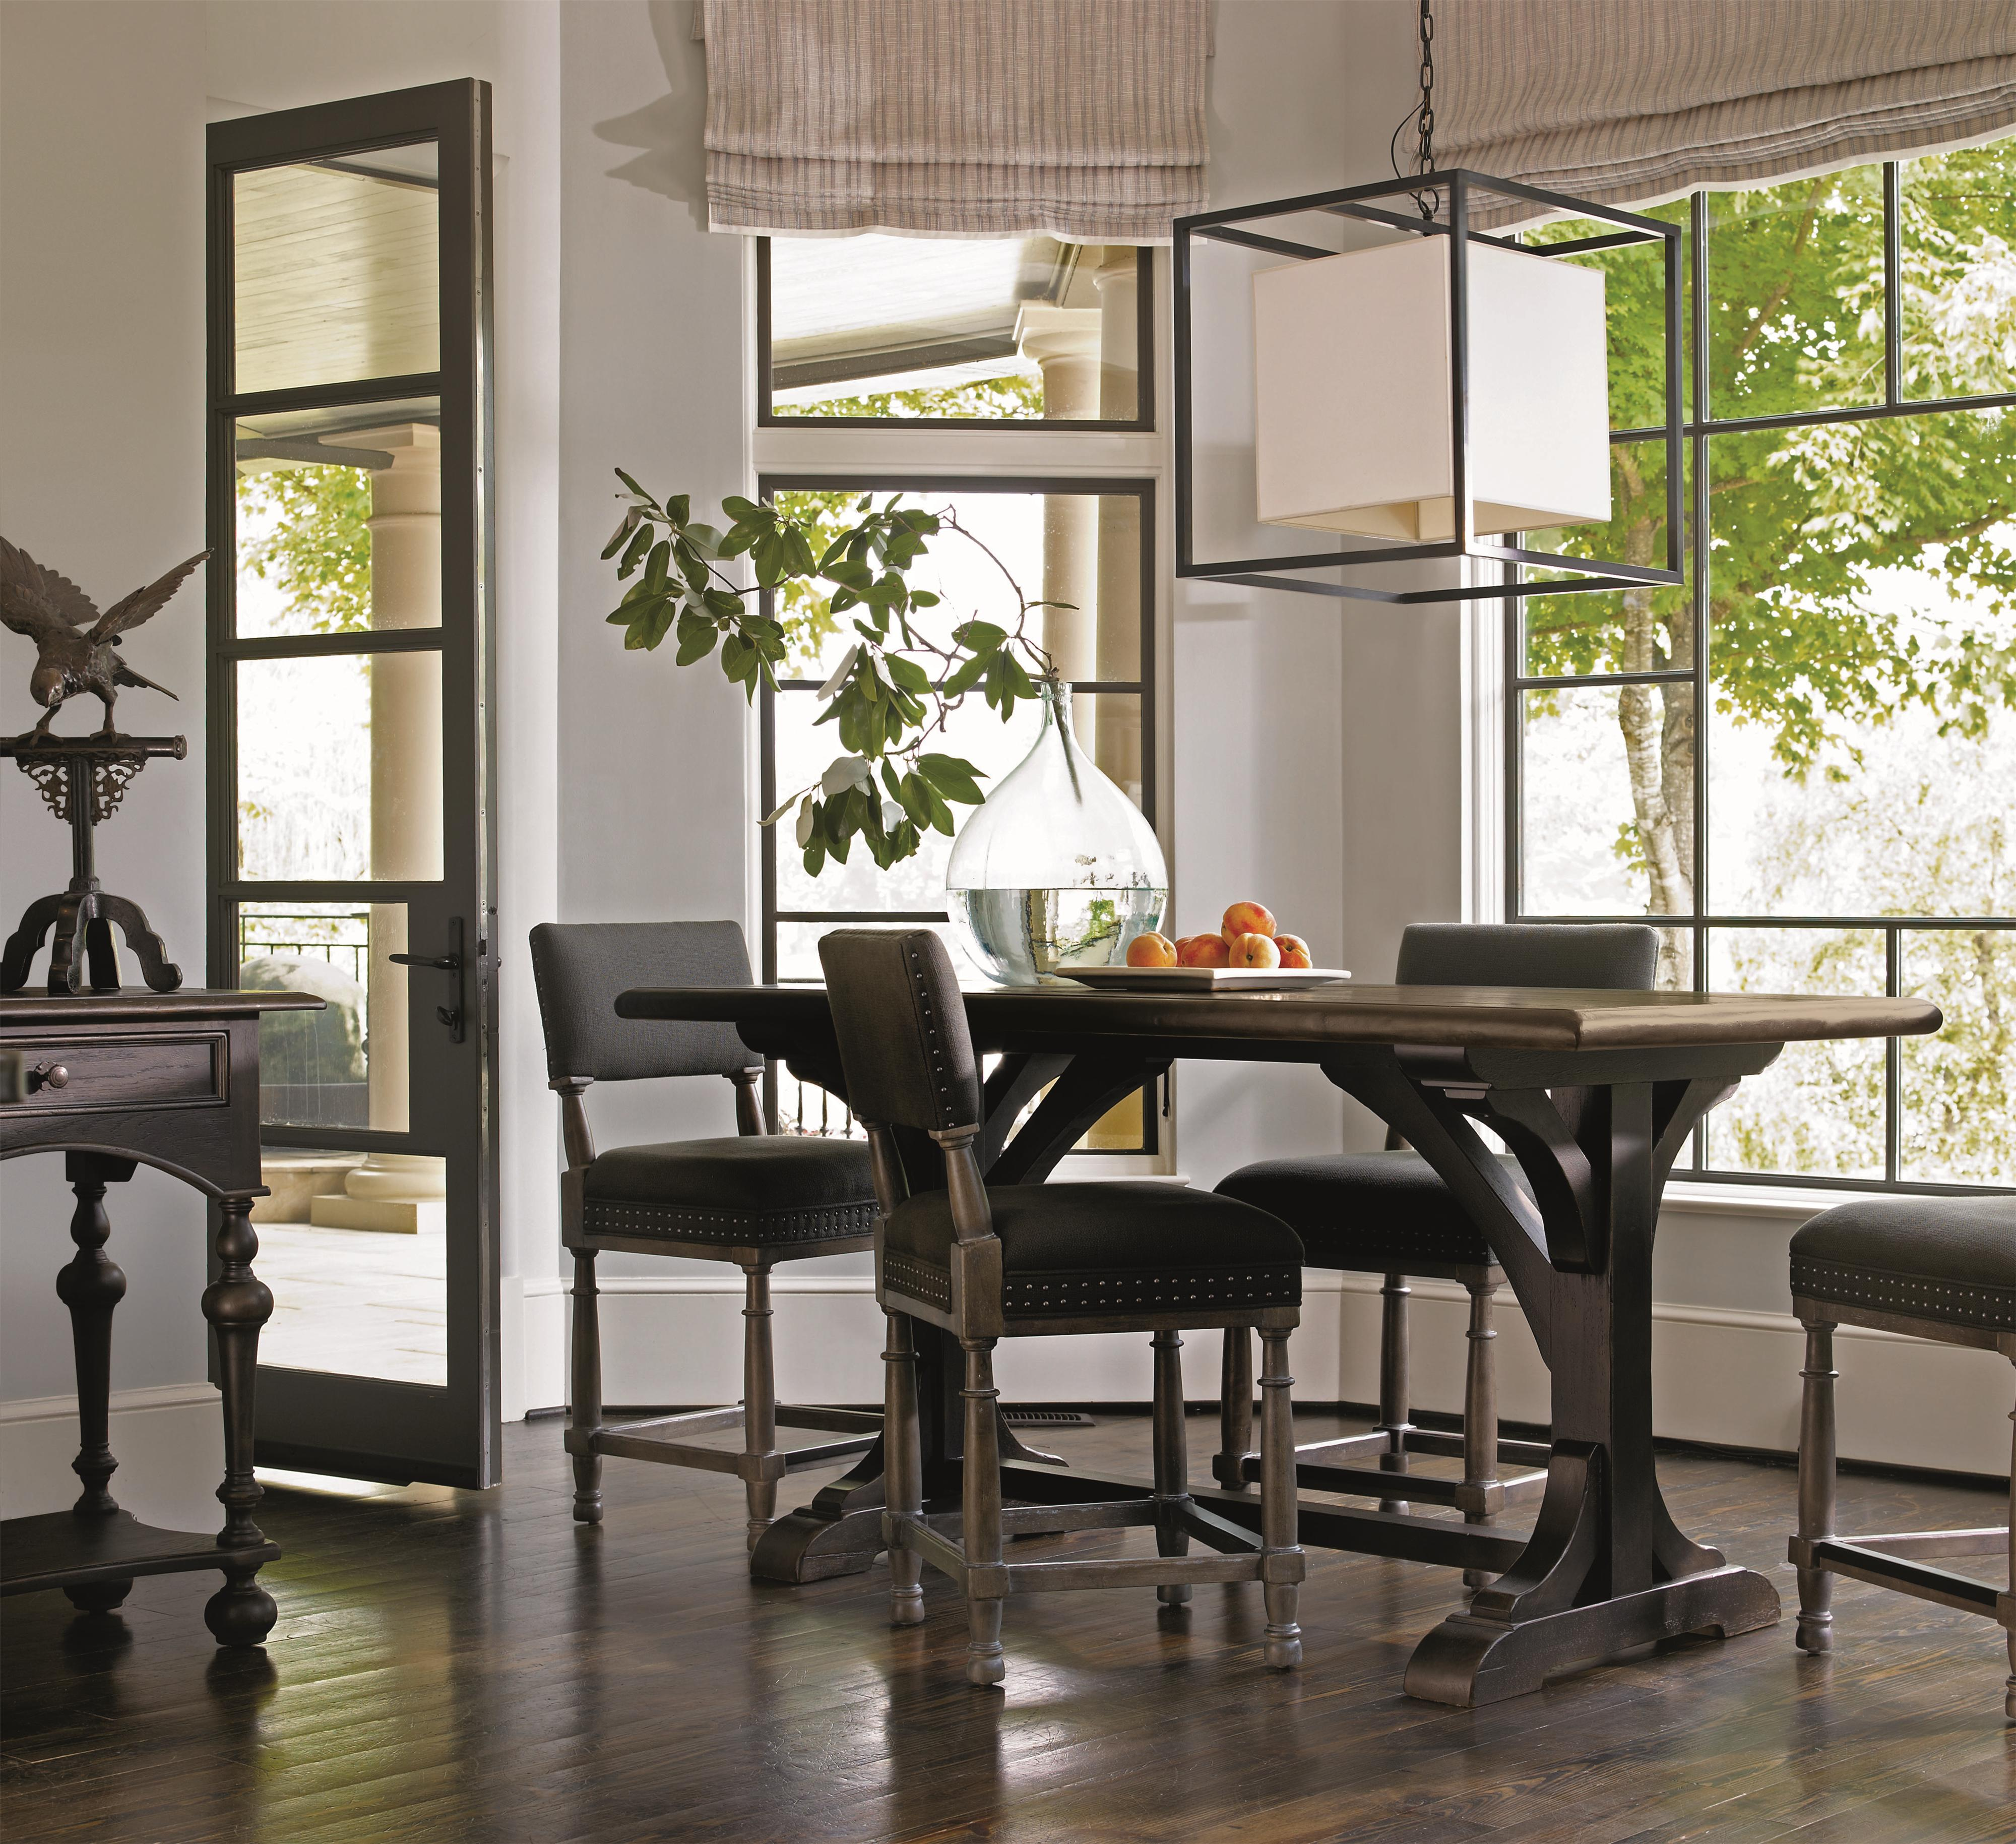 Bernhardt Belgian Oak Transitional Round Dining Table Made of